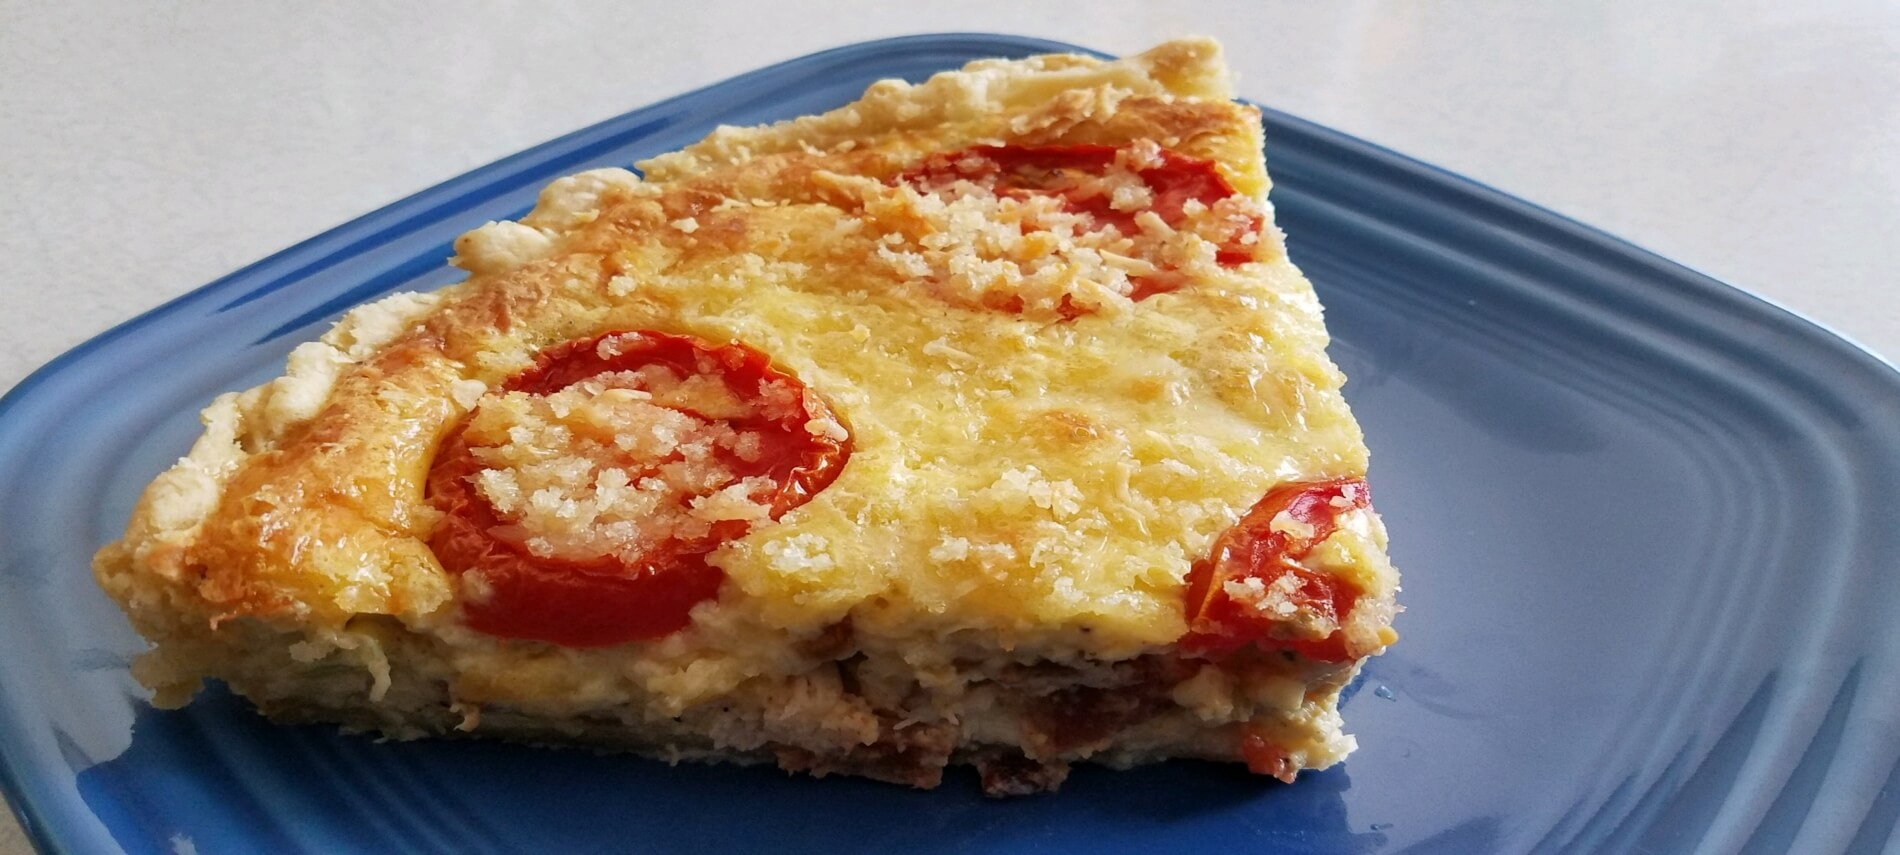 Slice of golden quiche topped with tomatoes on a blue plate